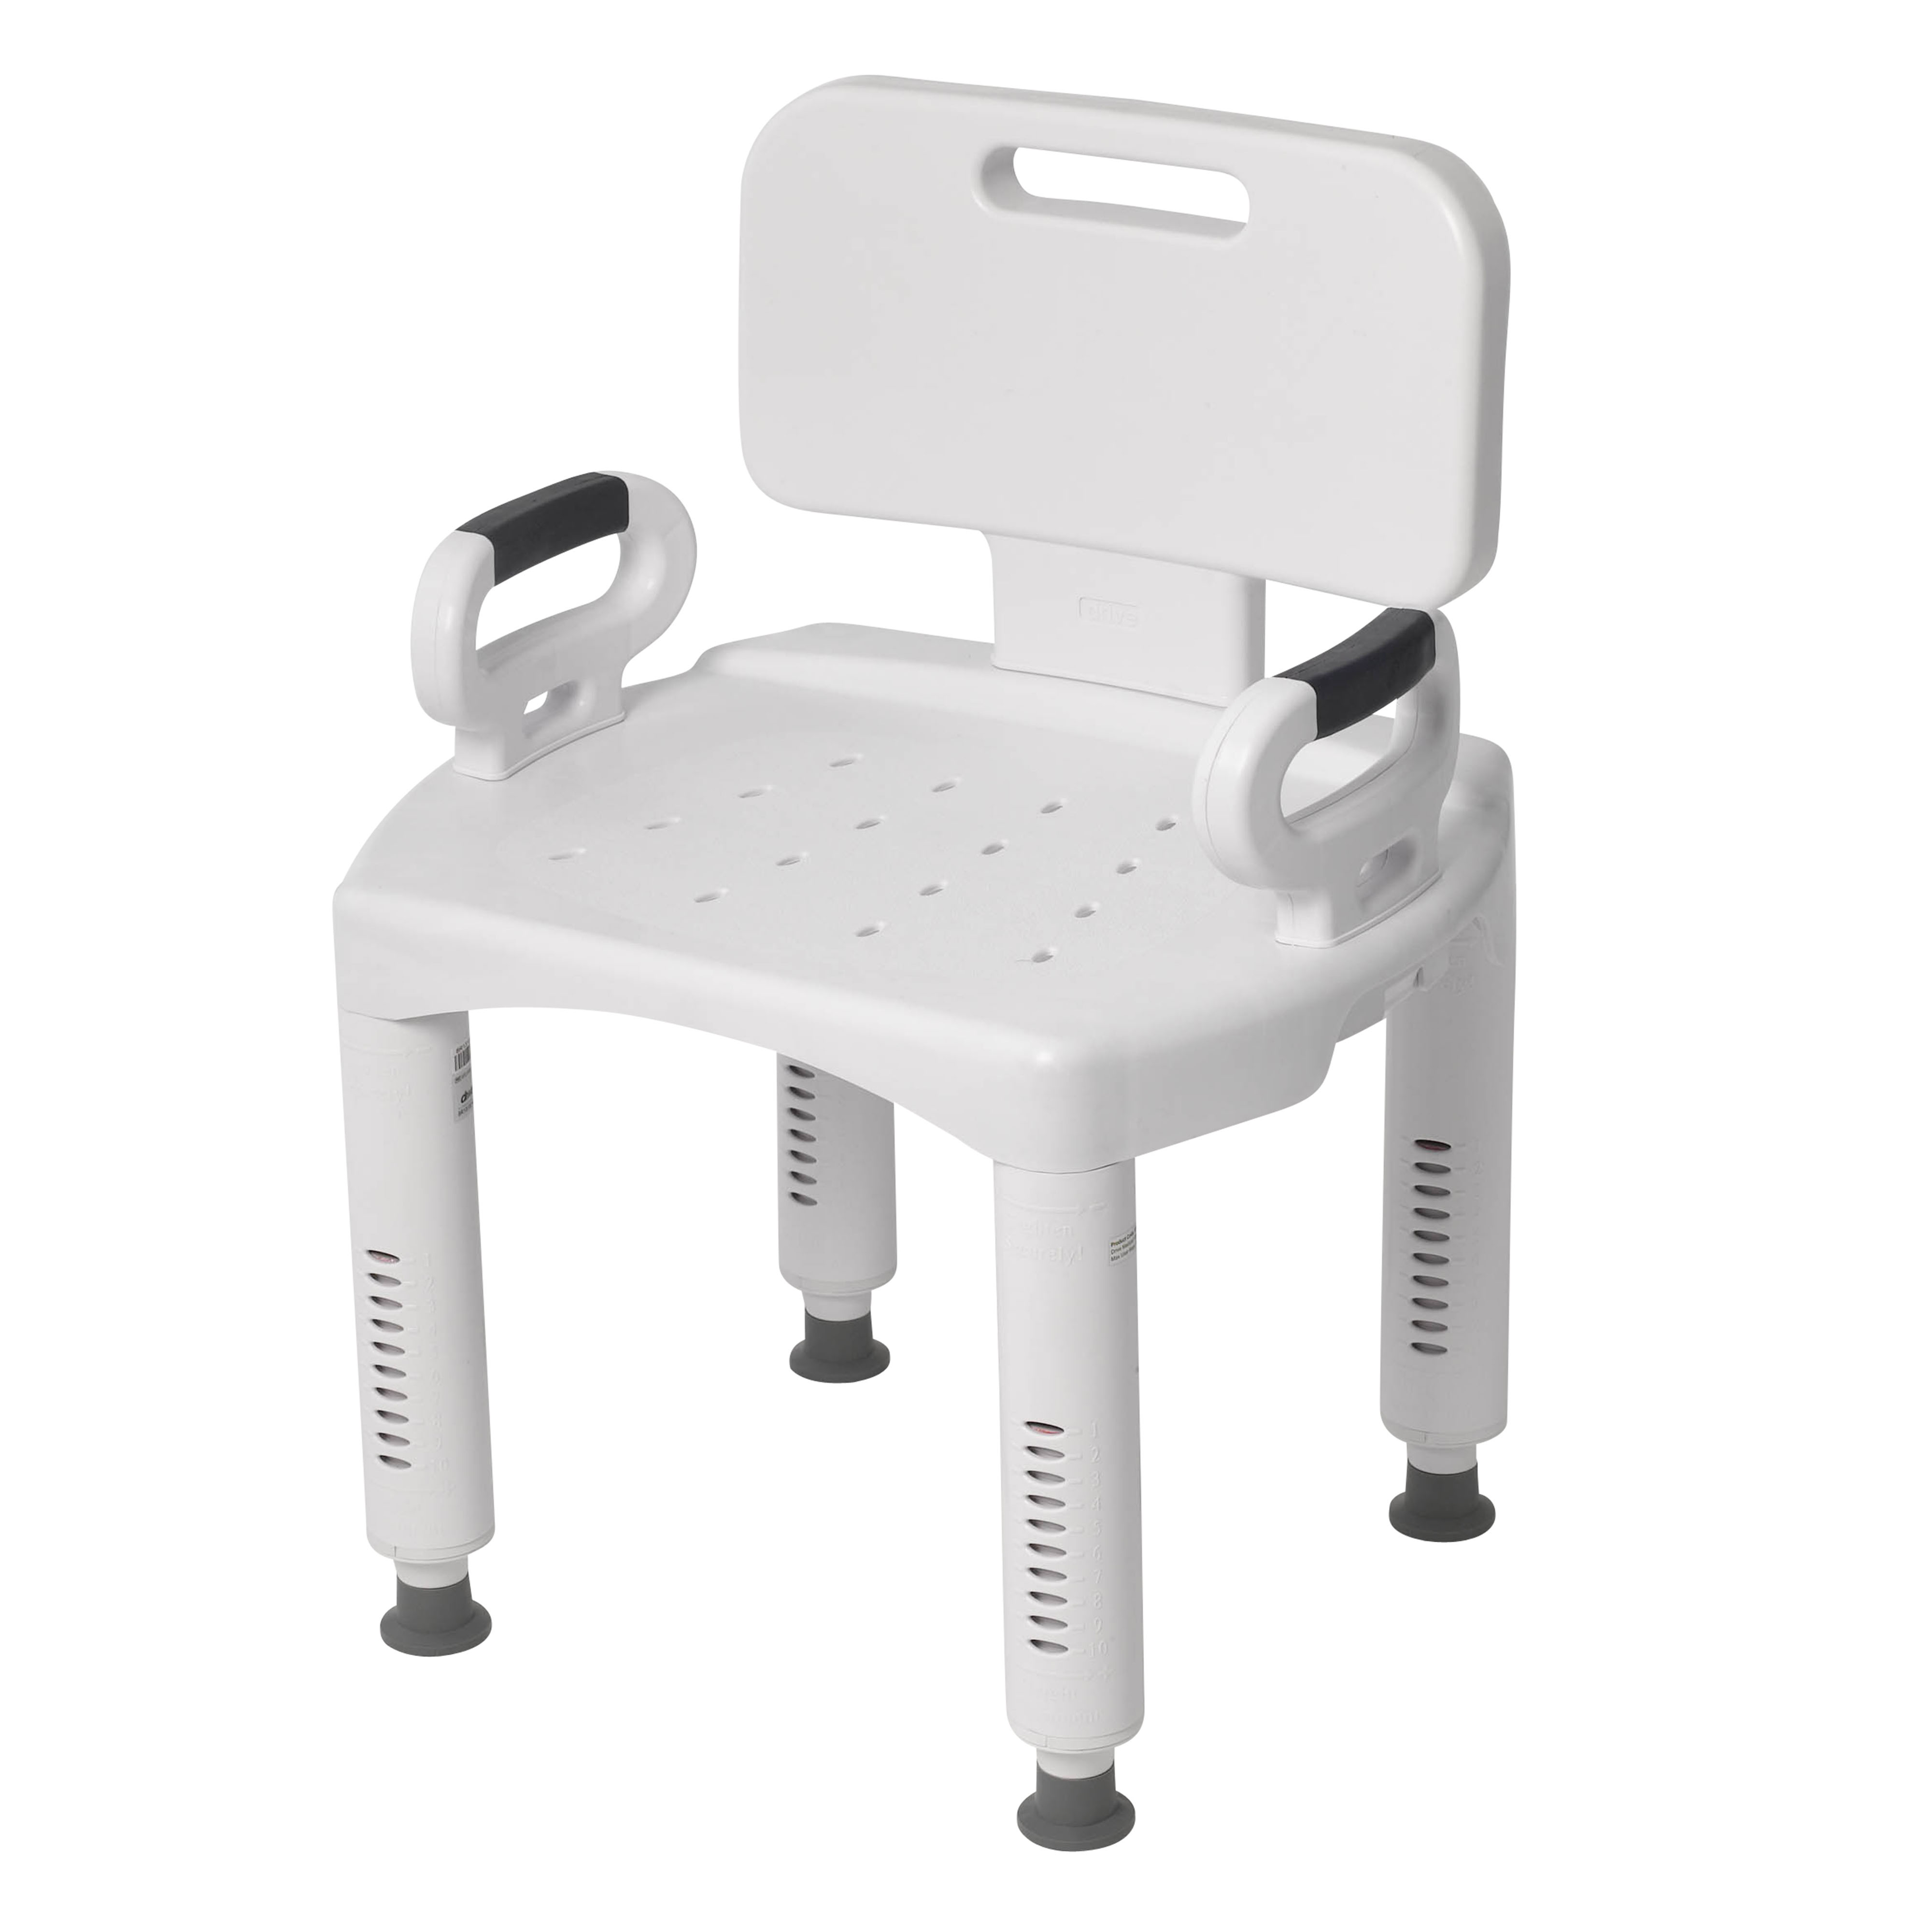 grey bathroom safety shower tub bench chair patio stacking chairs bath stool avacare medical best seller premium